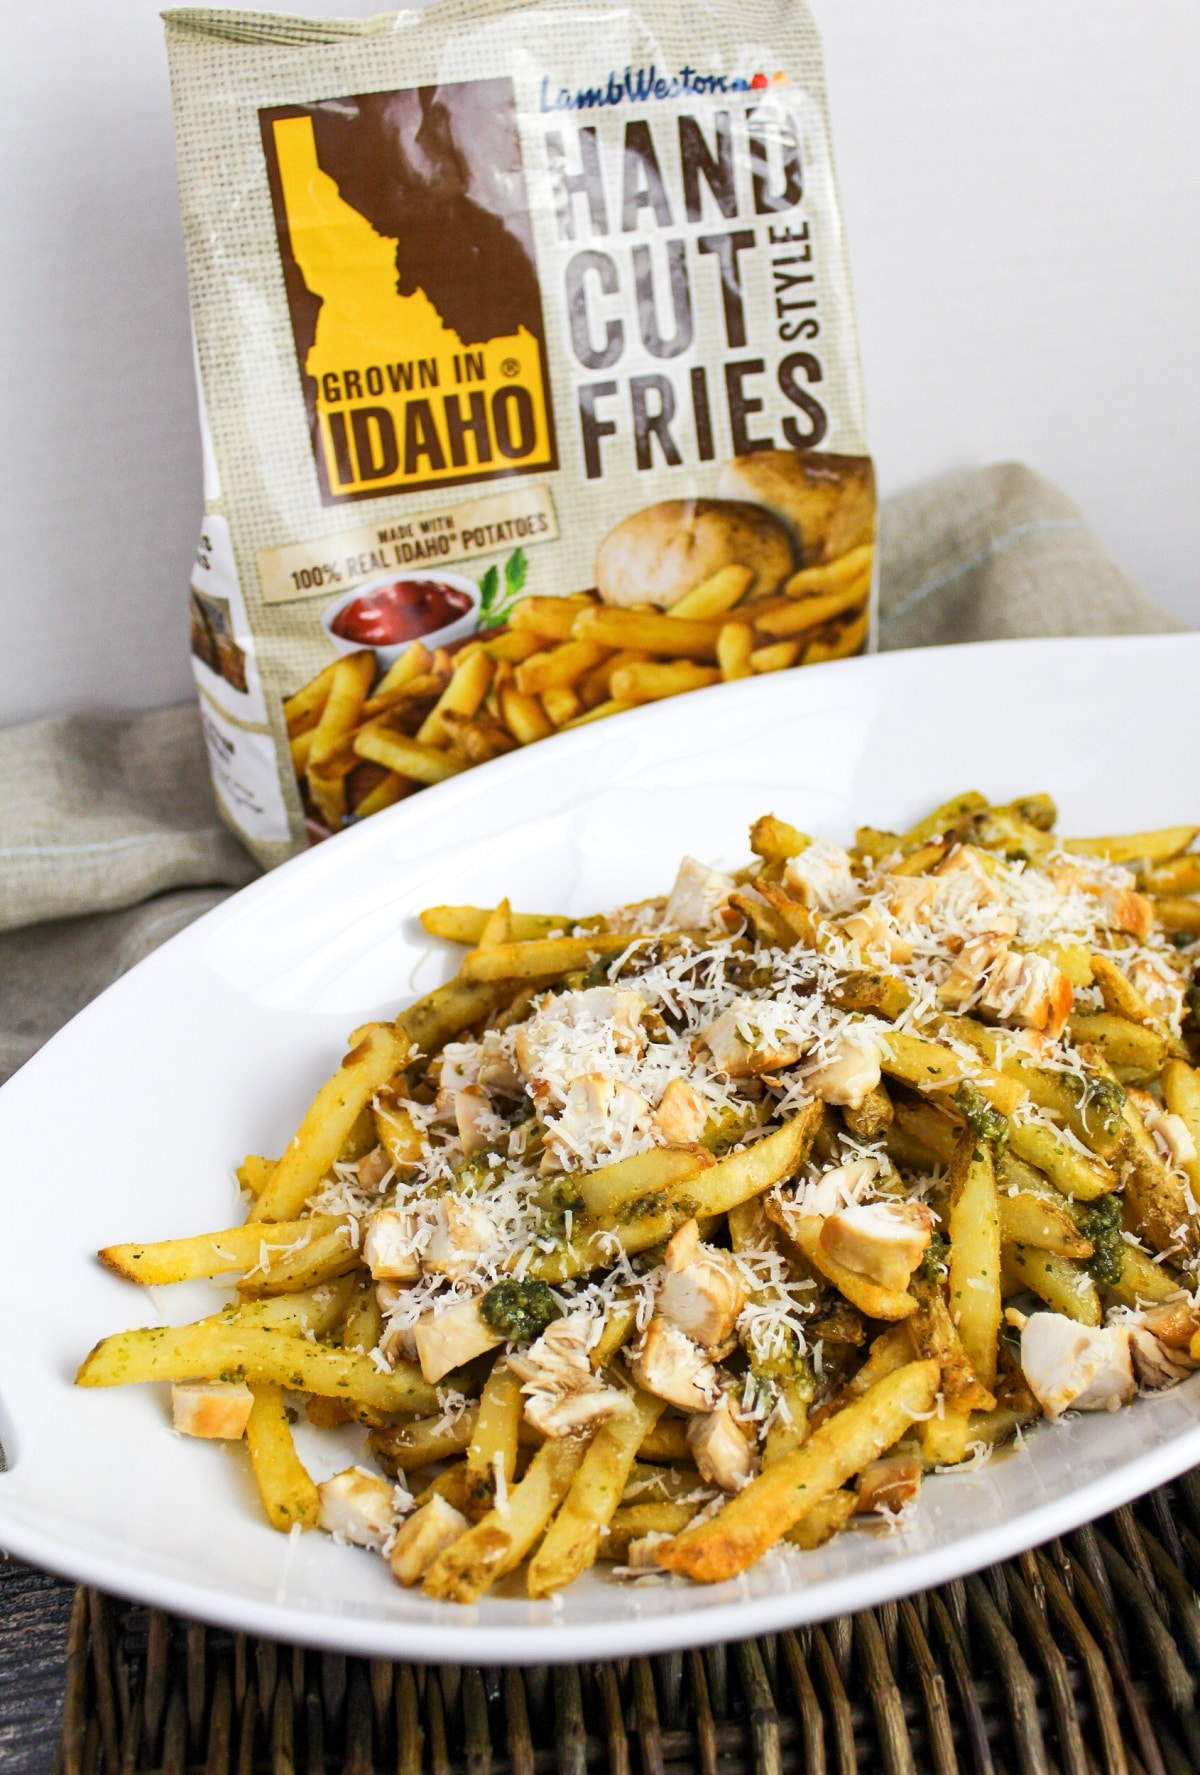 Pesto Chicken Fries with fry bag